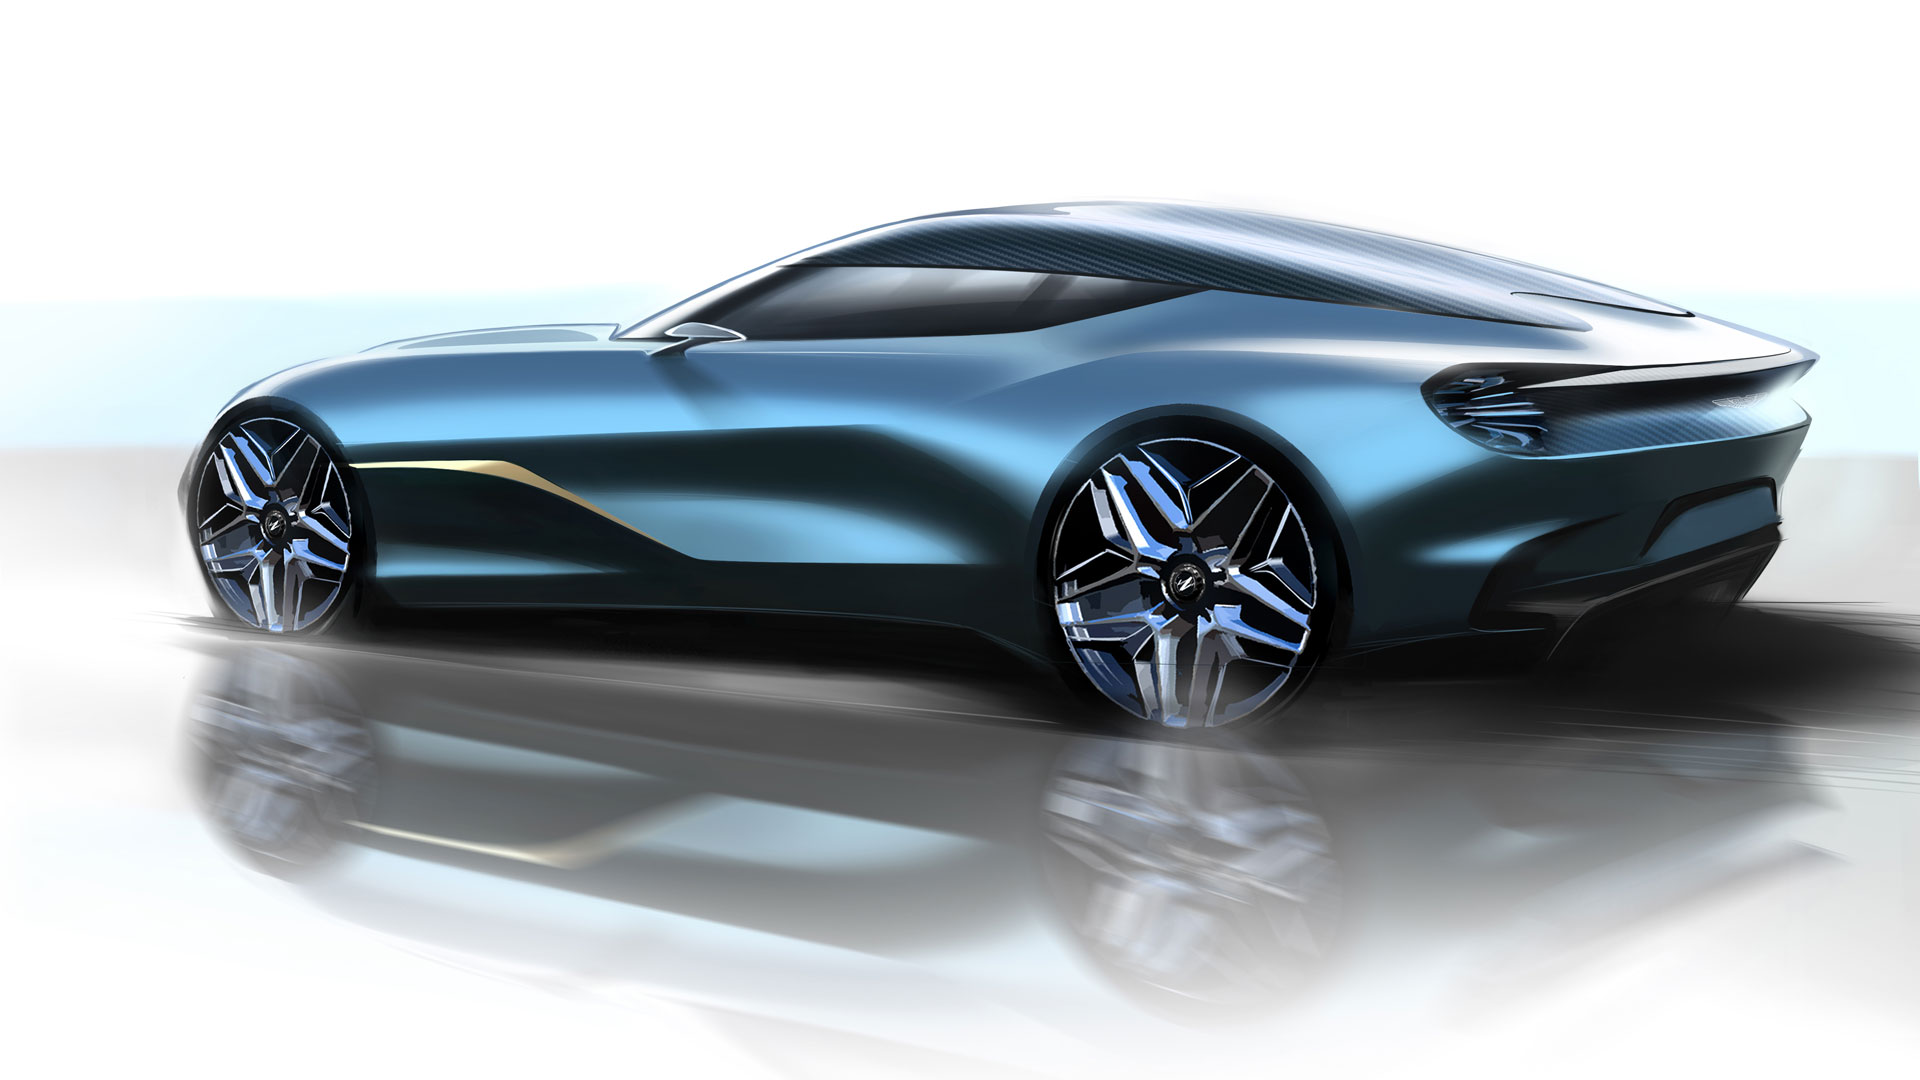 DBS GT Zagato revealed